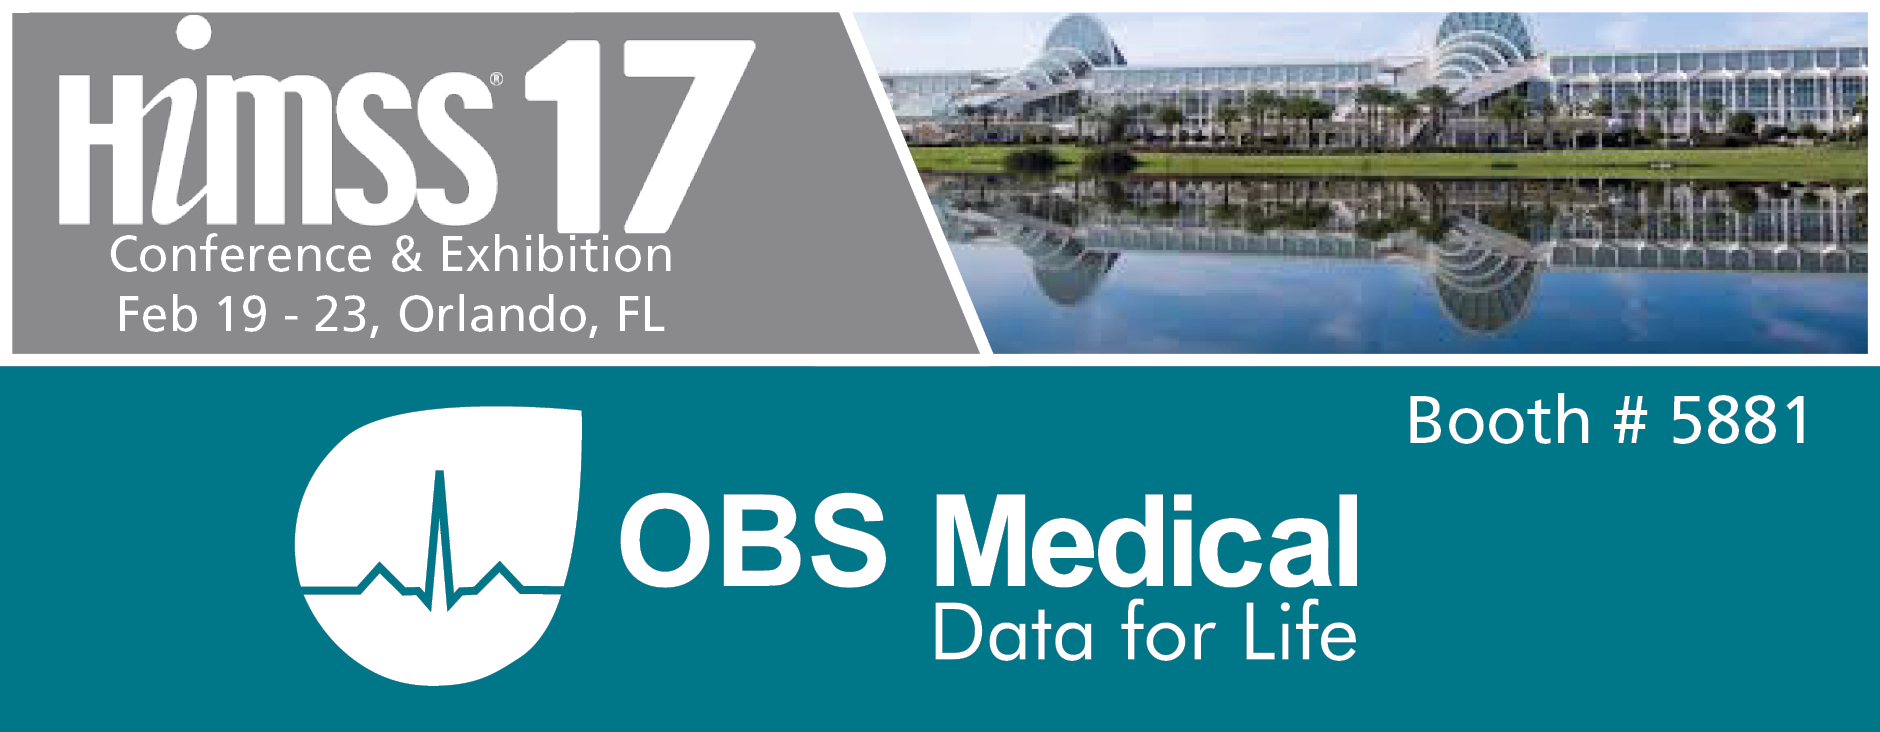 OBS Medical HIMSS17 banner